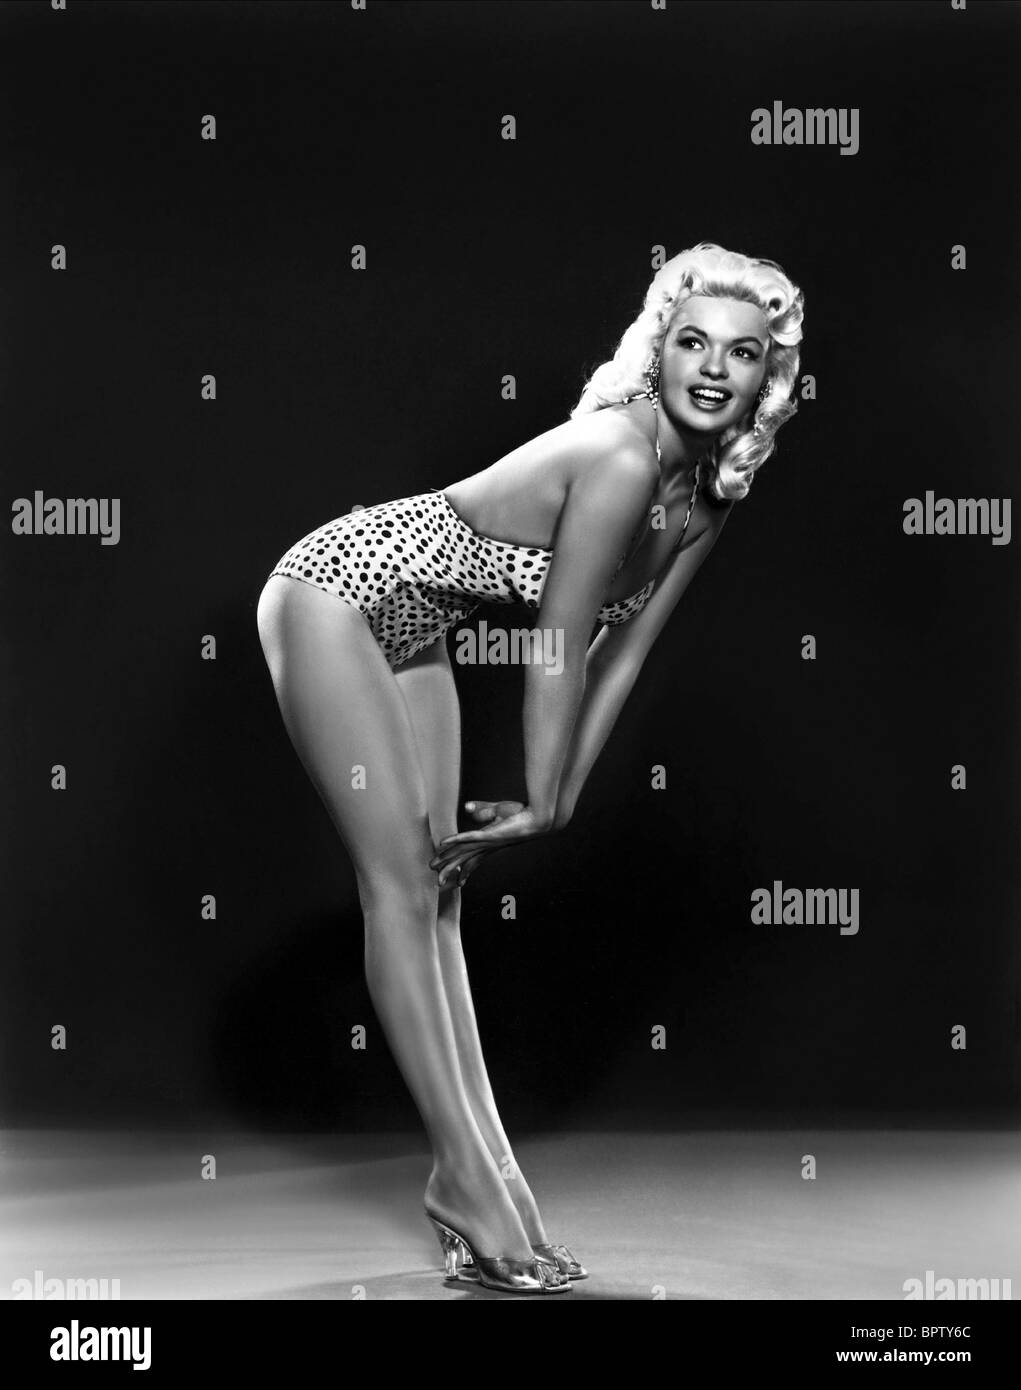 JAYNE MANSFIELD ACTRESS (1955) - Stock Image